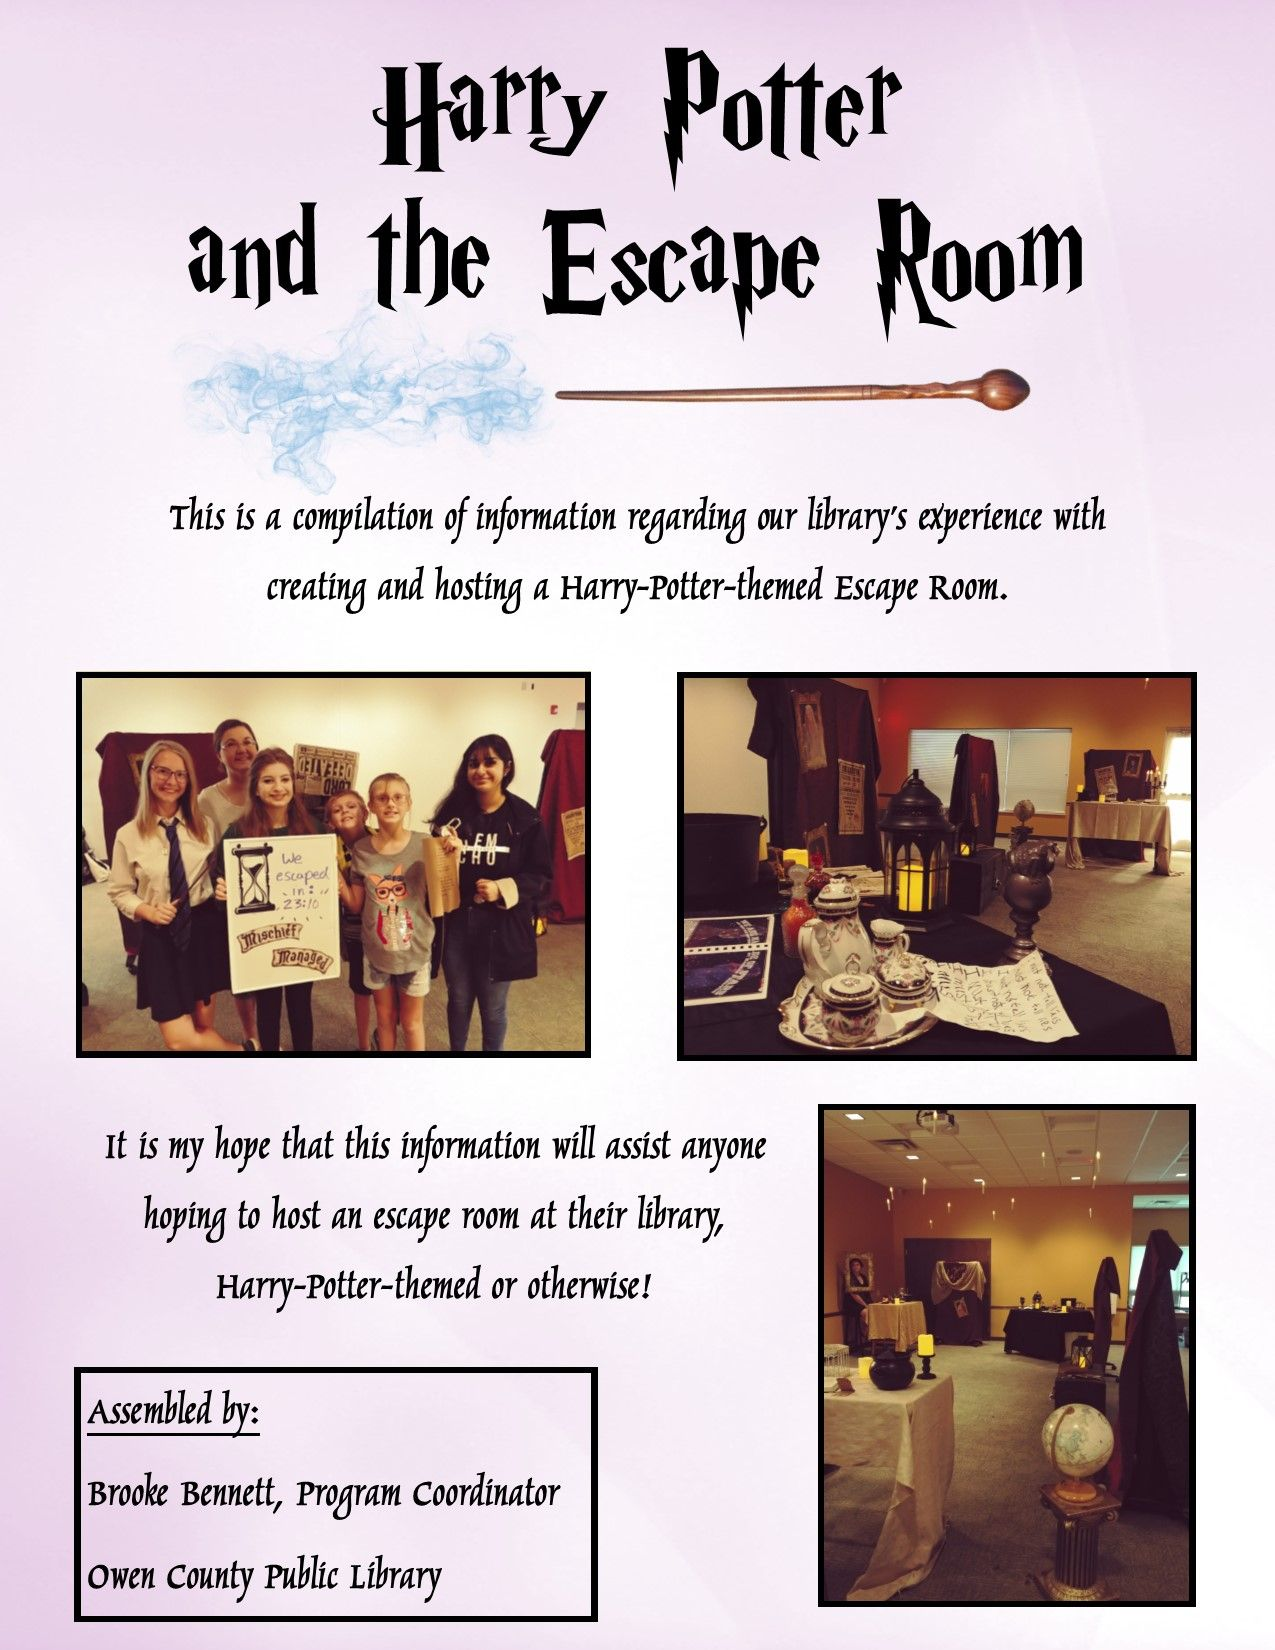 Harry Potter And The Escape Room Escape Room Harry Potter Library Escape Room For Kids